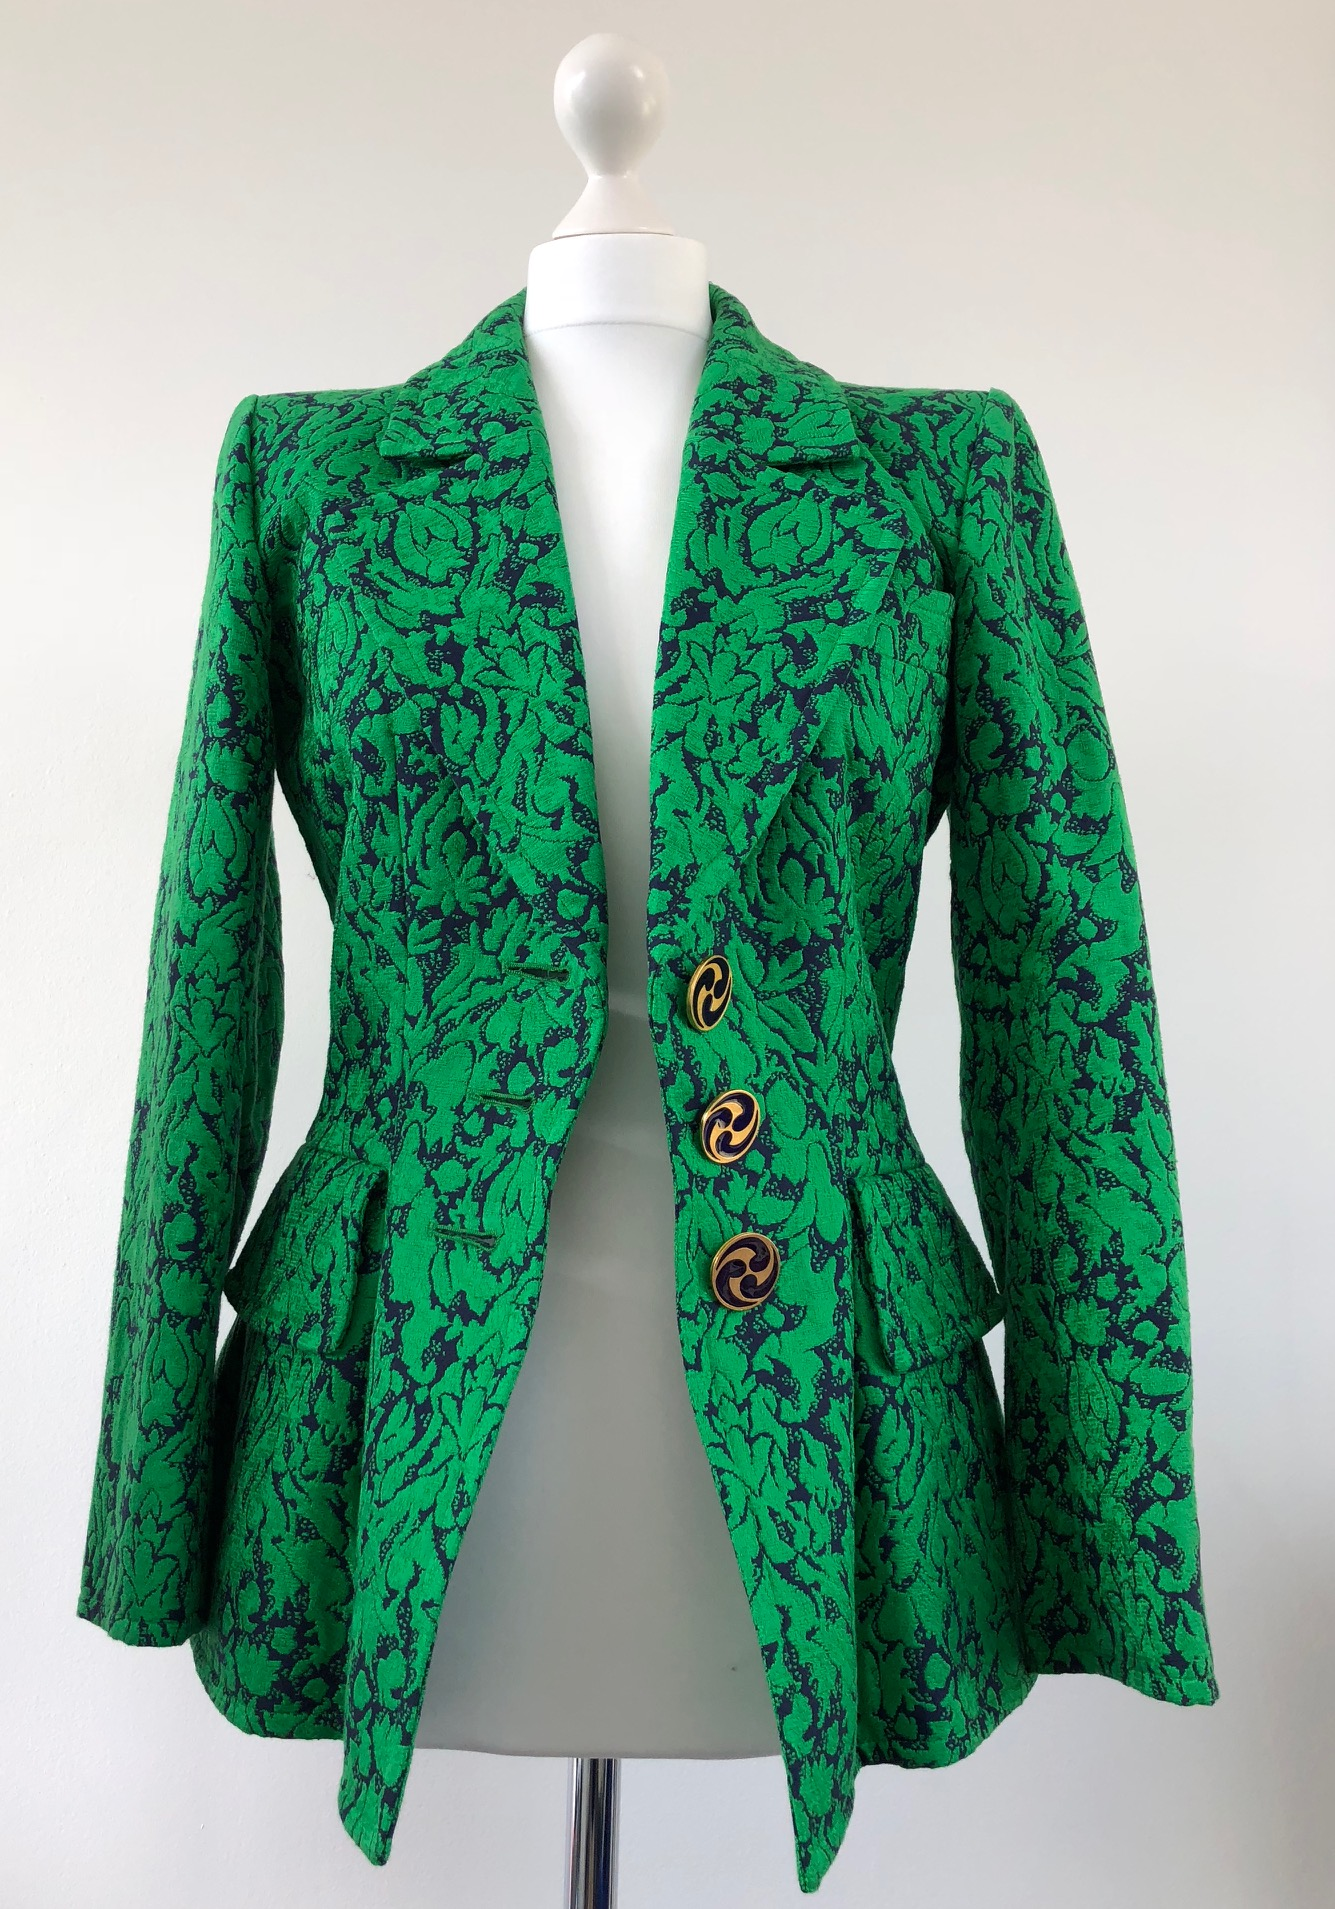 Ysl Brocade Cashmere Print Fitted Jacket 1992 1993 Collection